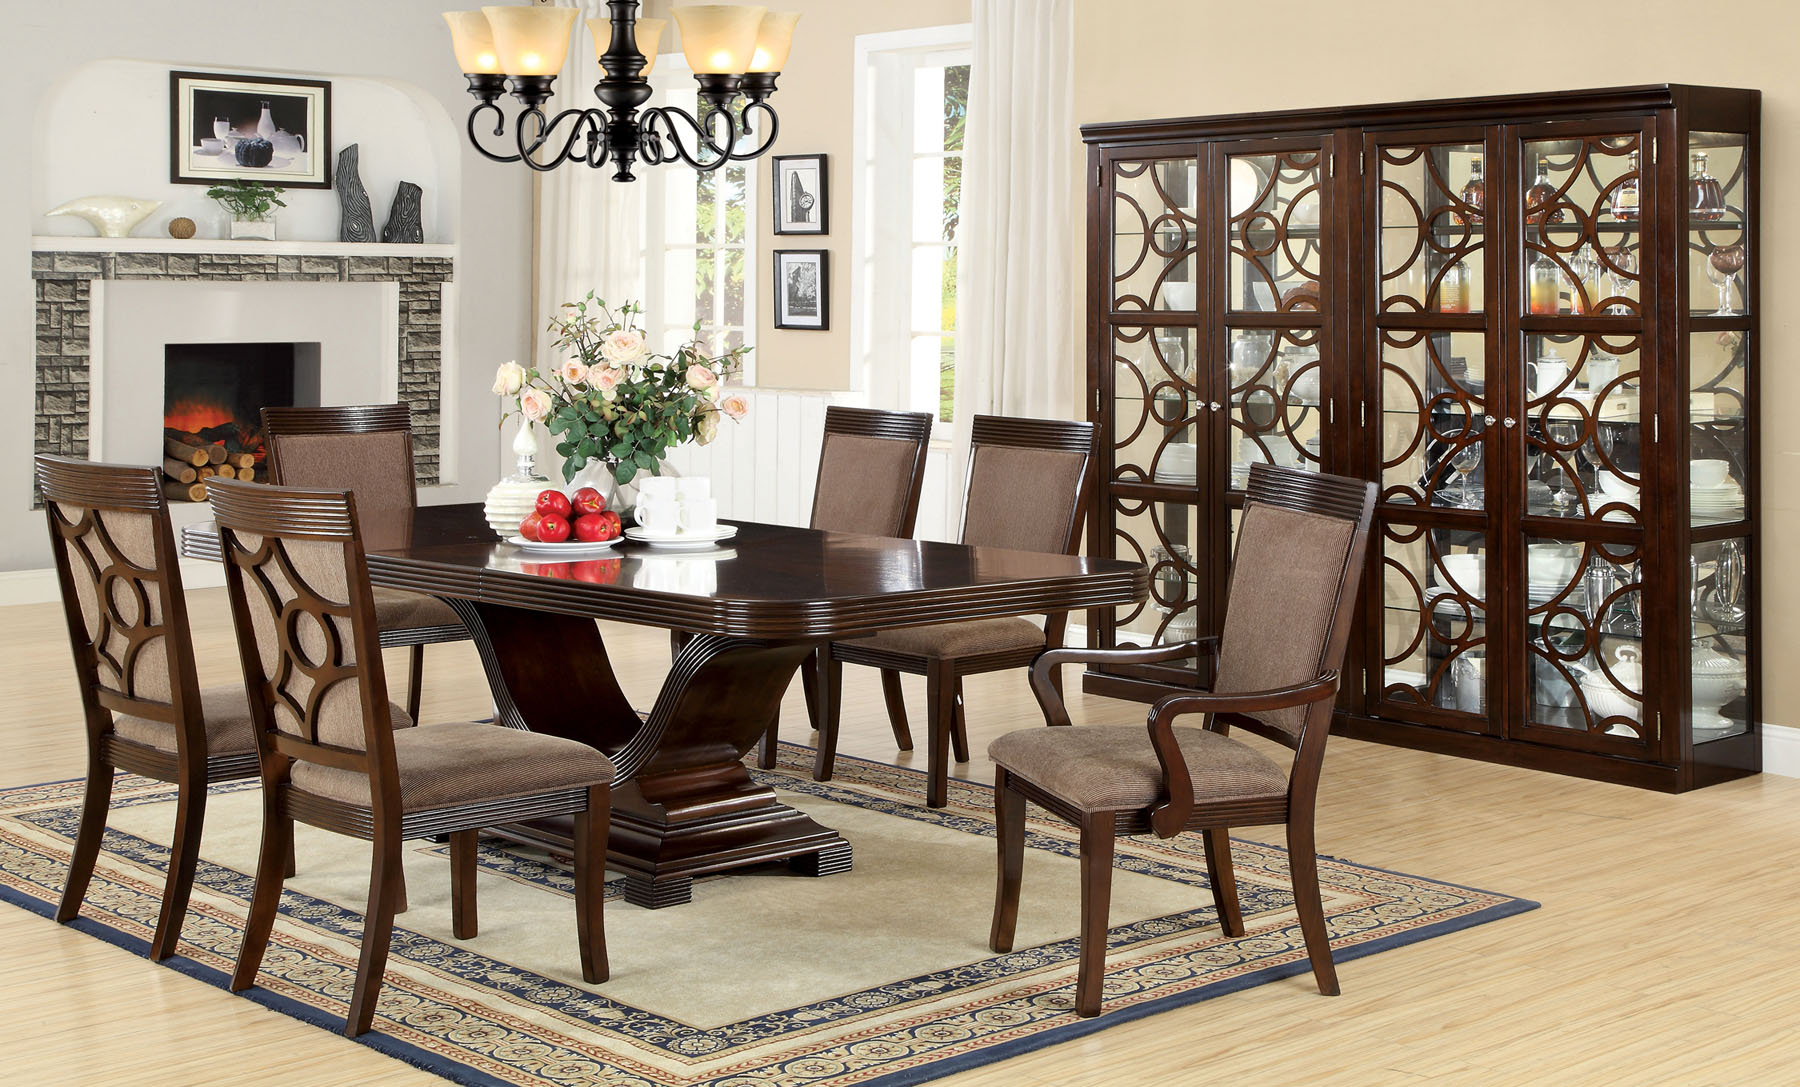 Foa Furniture Of America Woodmont 7pc Dining Room Set